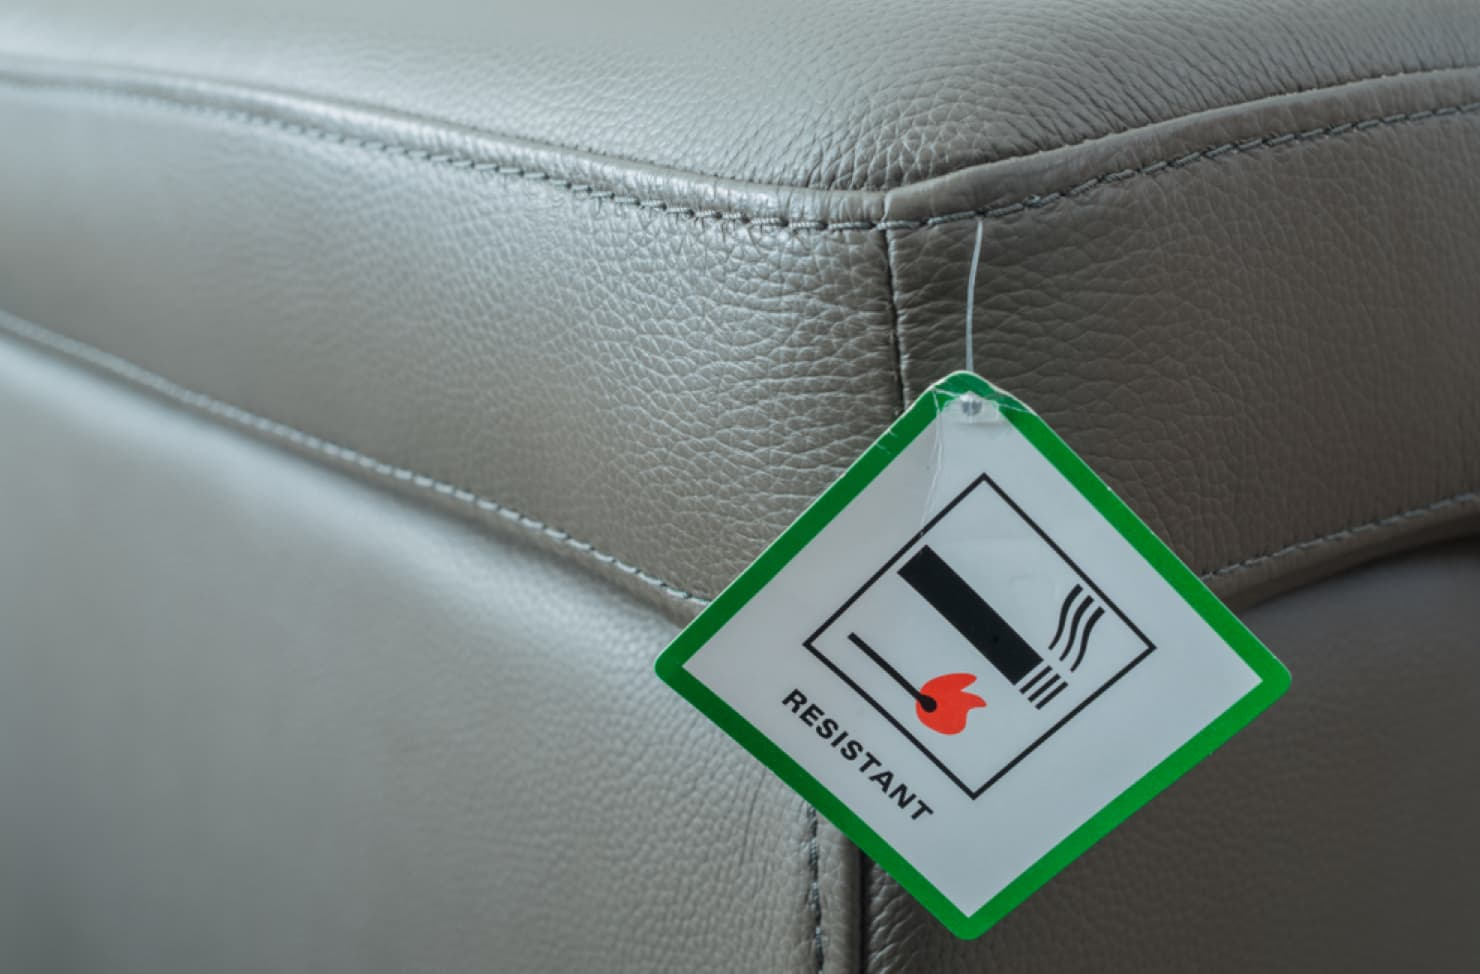 fire label on a leather